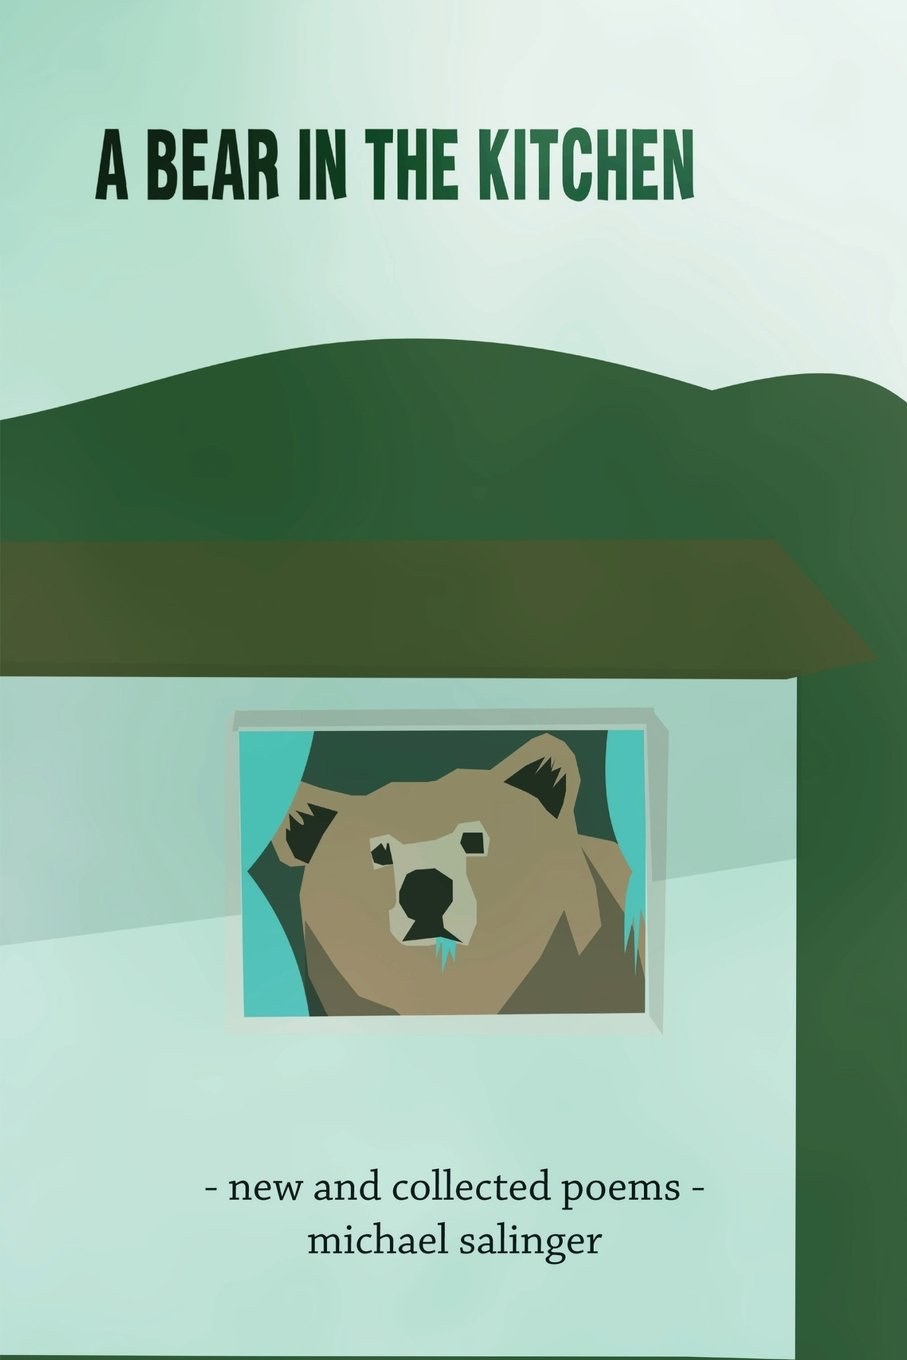 A Bear in the Kitchen #2